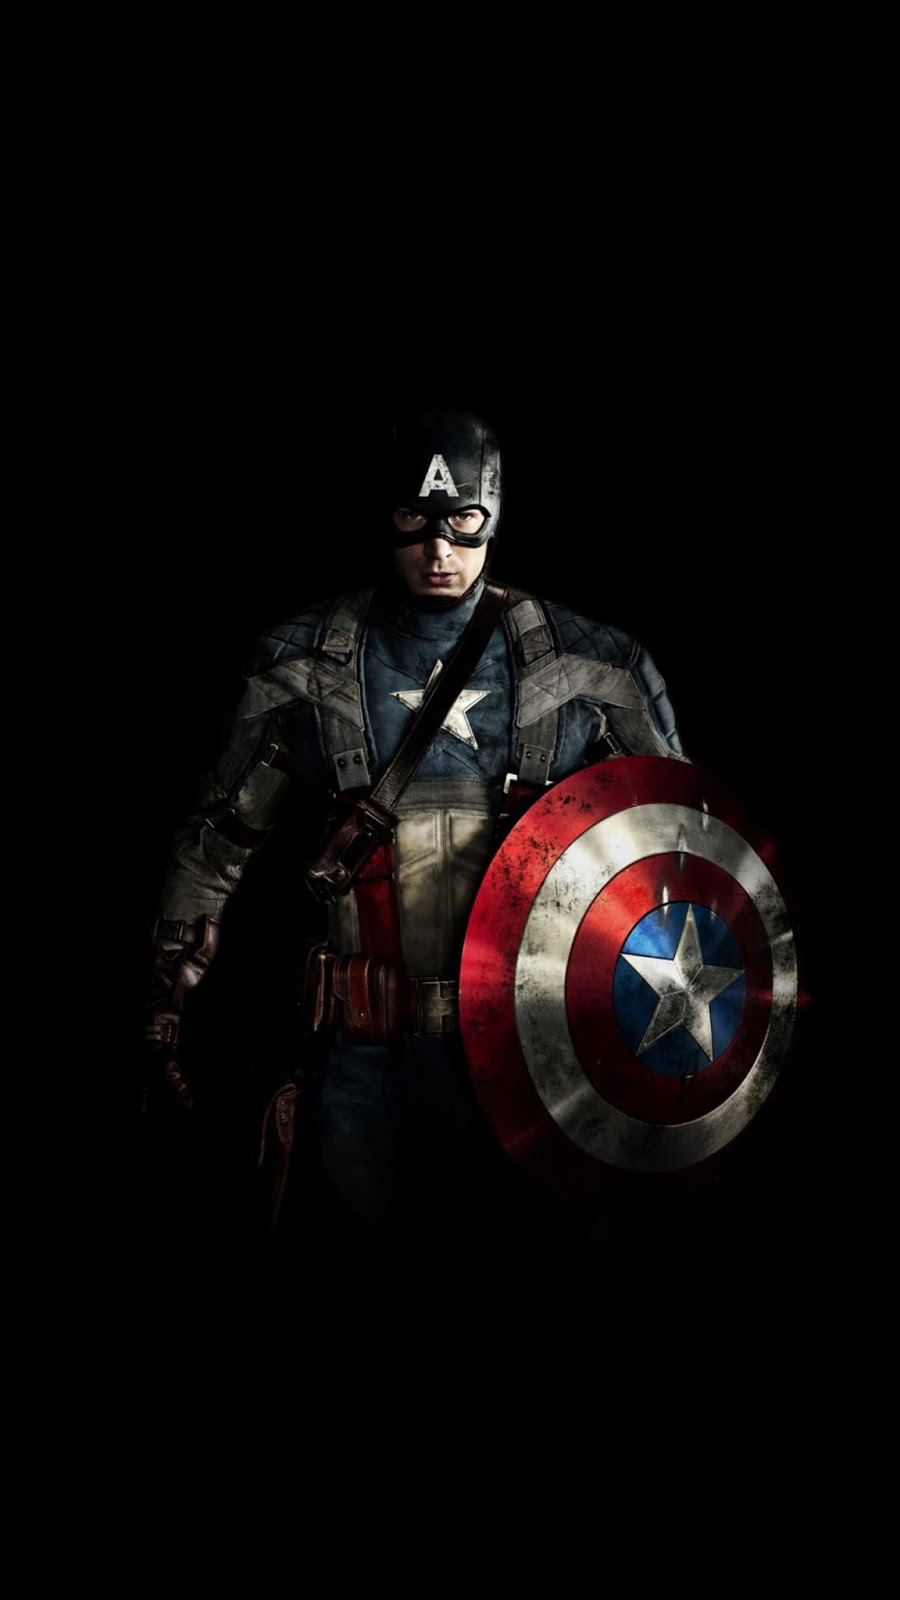 World Of Technology Superheros Dark Amoled Wallpapers